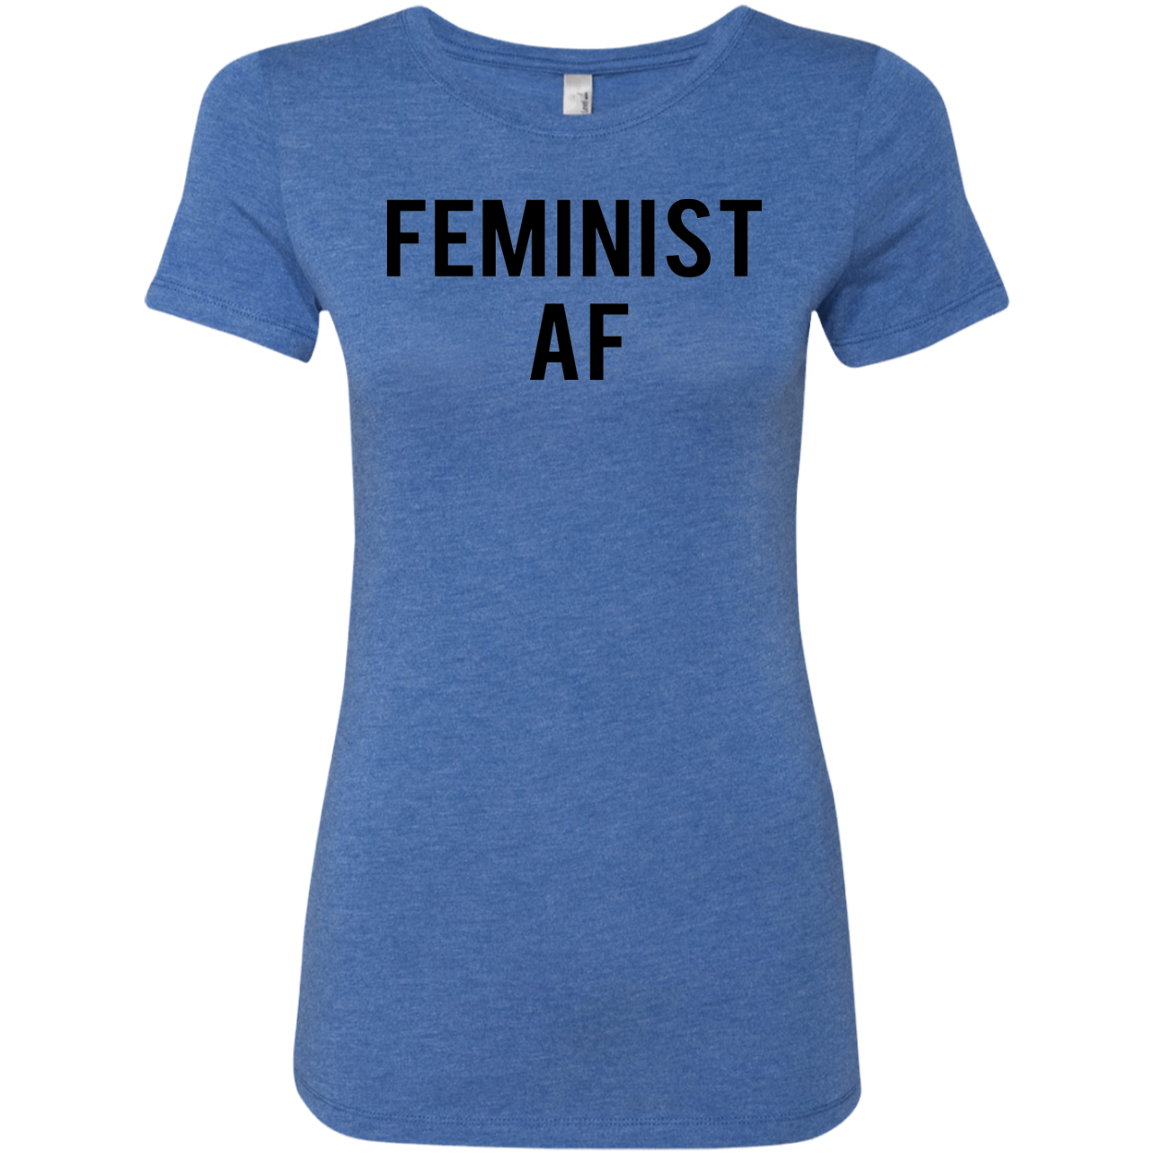 Feminist Af Women's Classic Tee